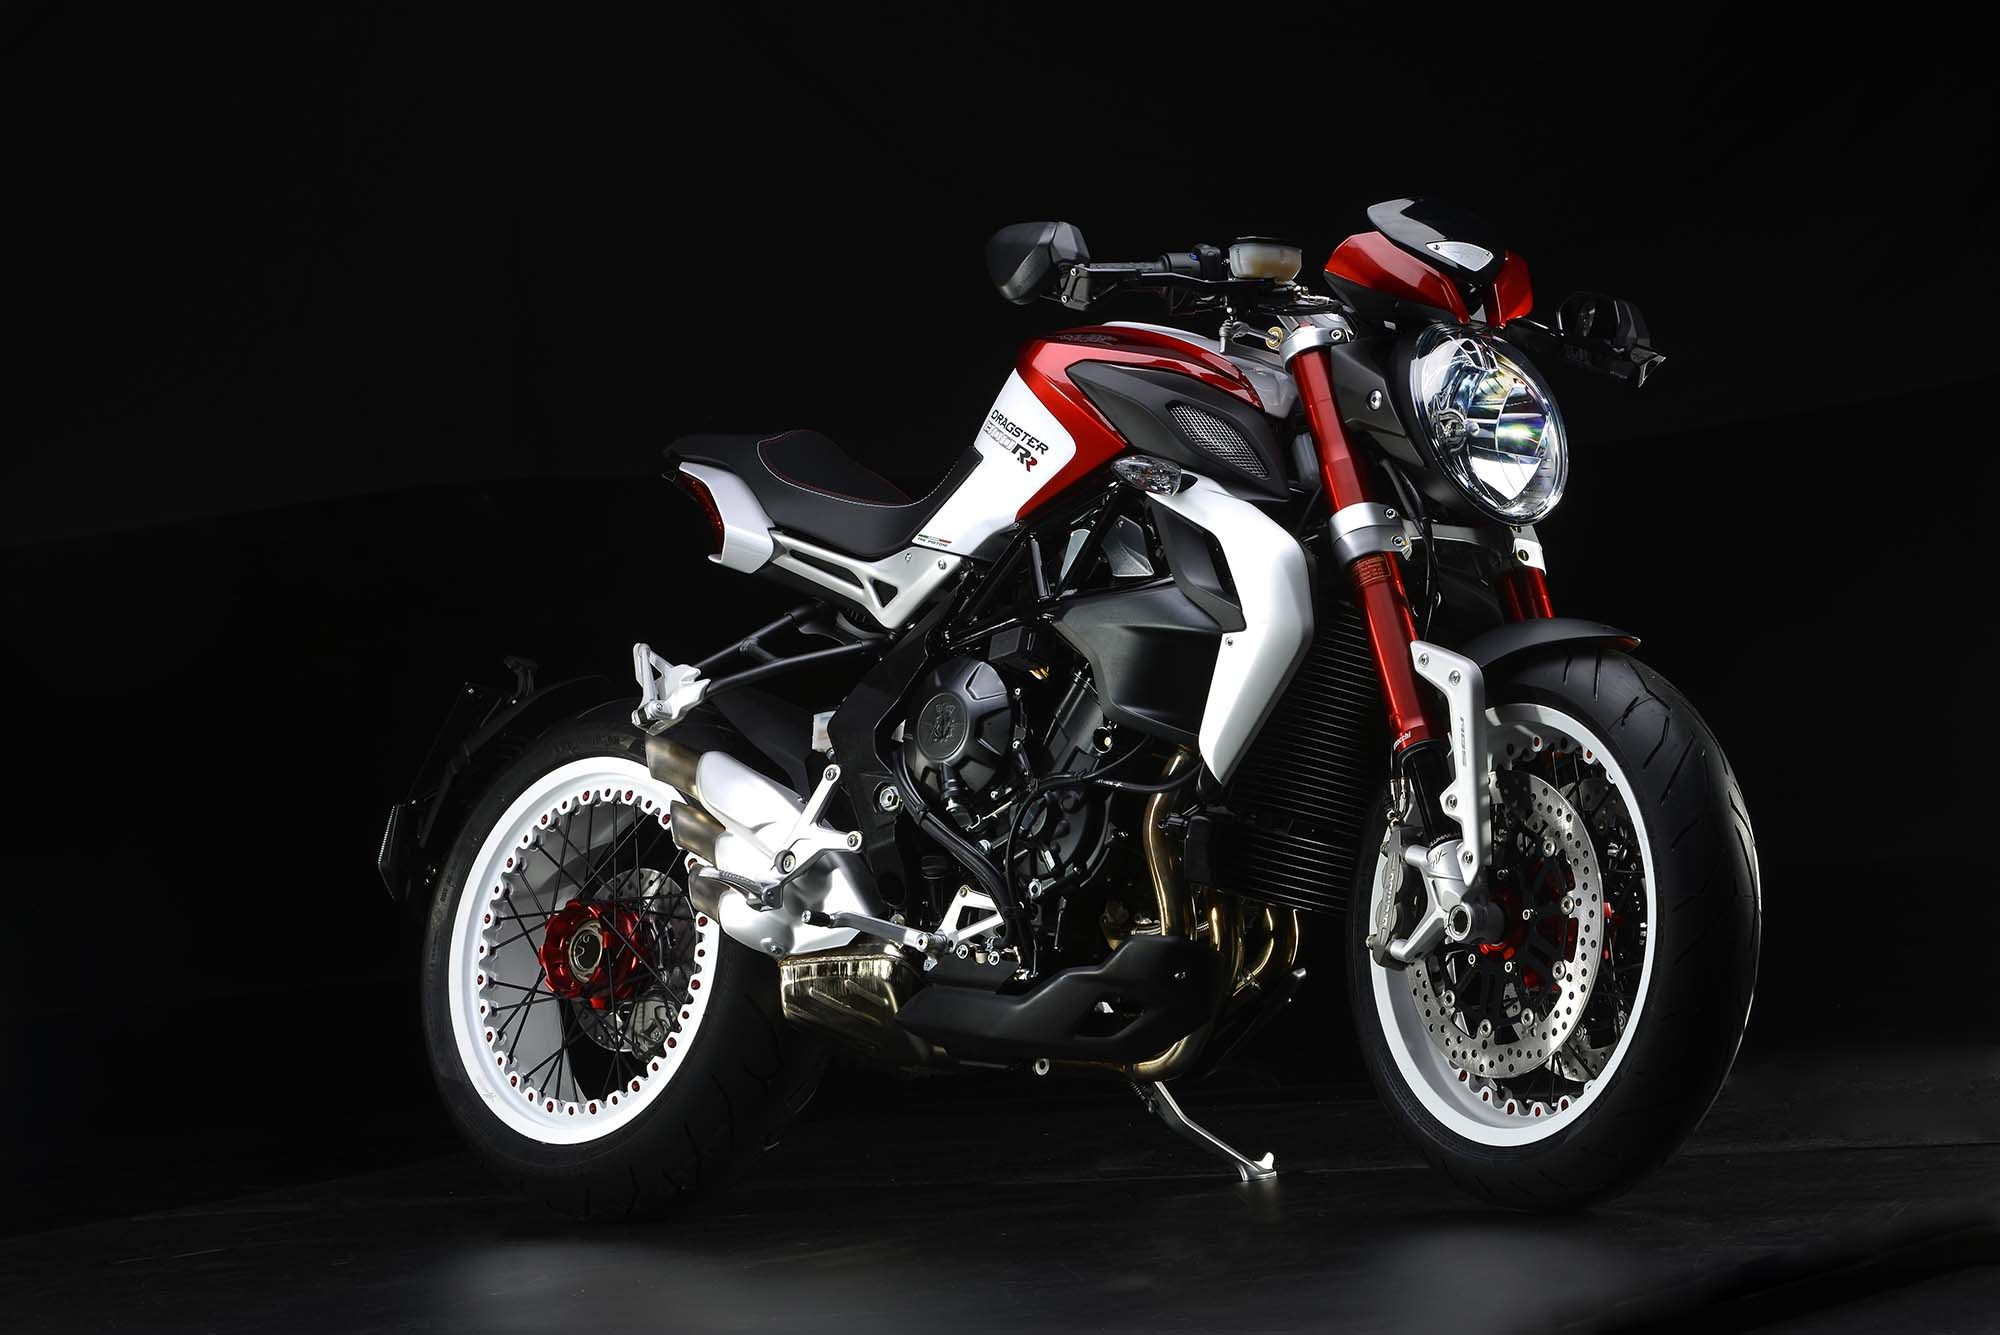 Officially Official Mv Agusta Brutale Dragster 800 Rr Mv Agusta Dragster Mv Agusta Brutale Mv Agusta